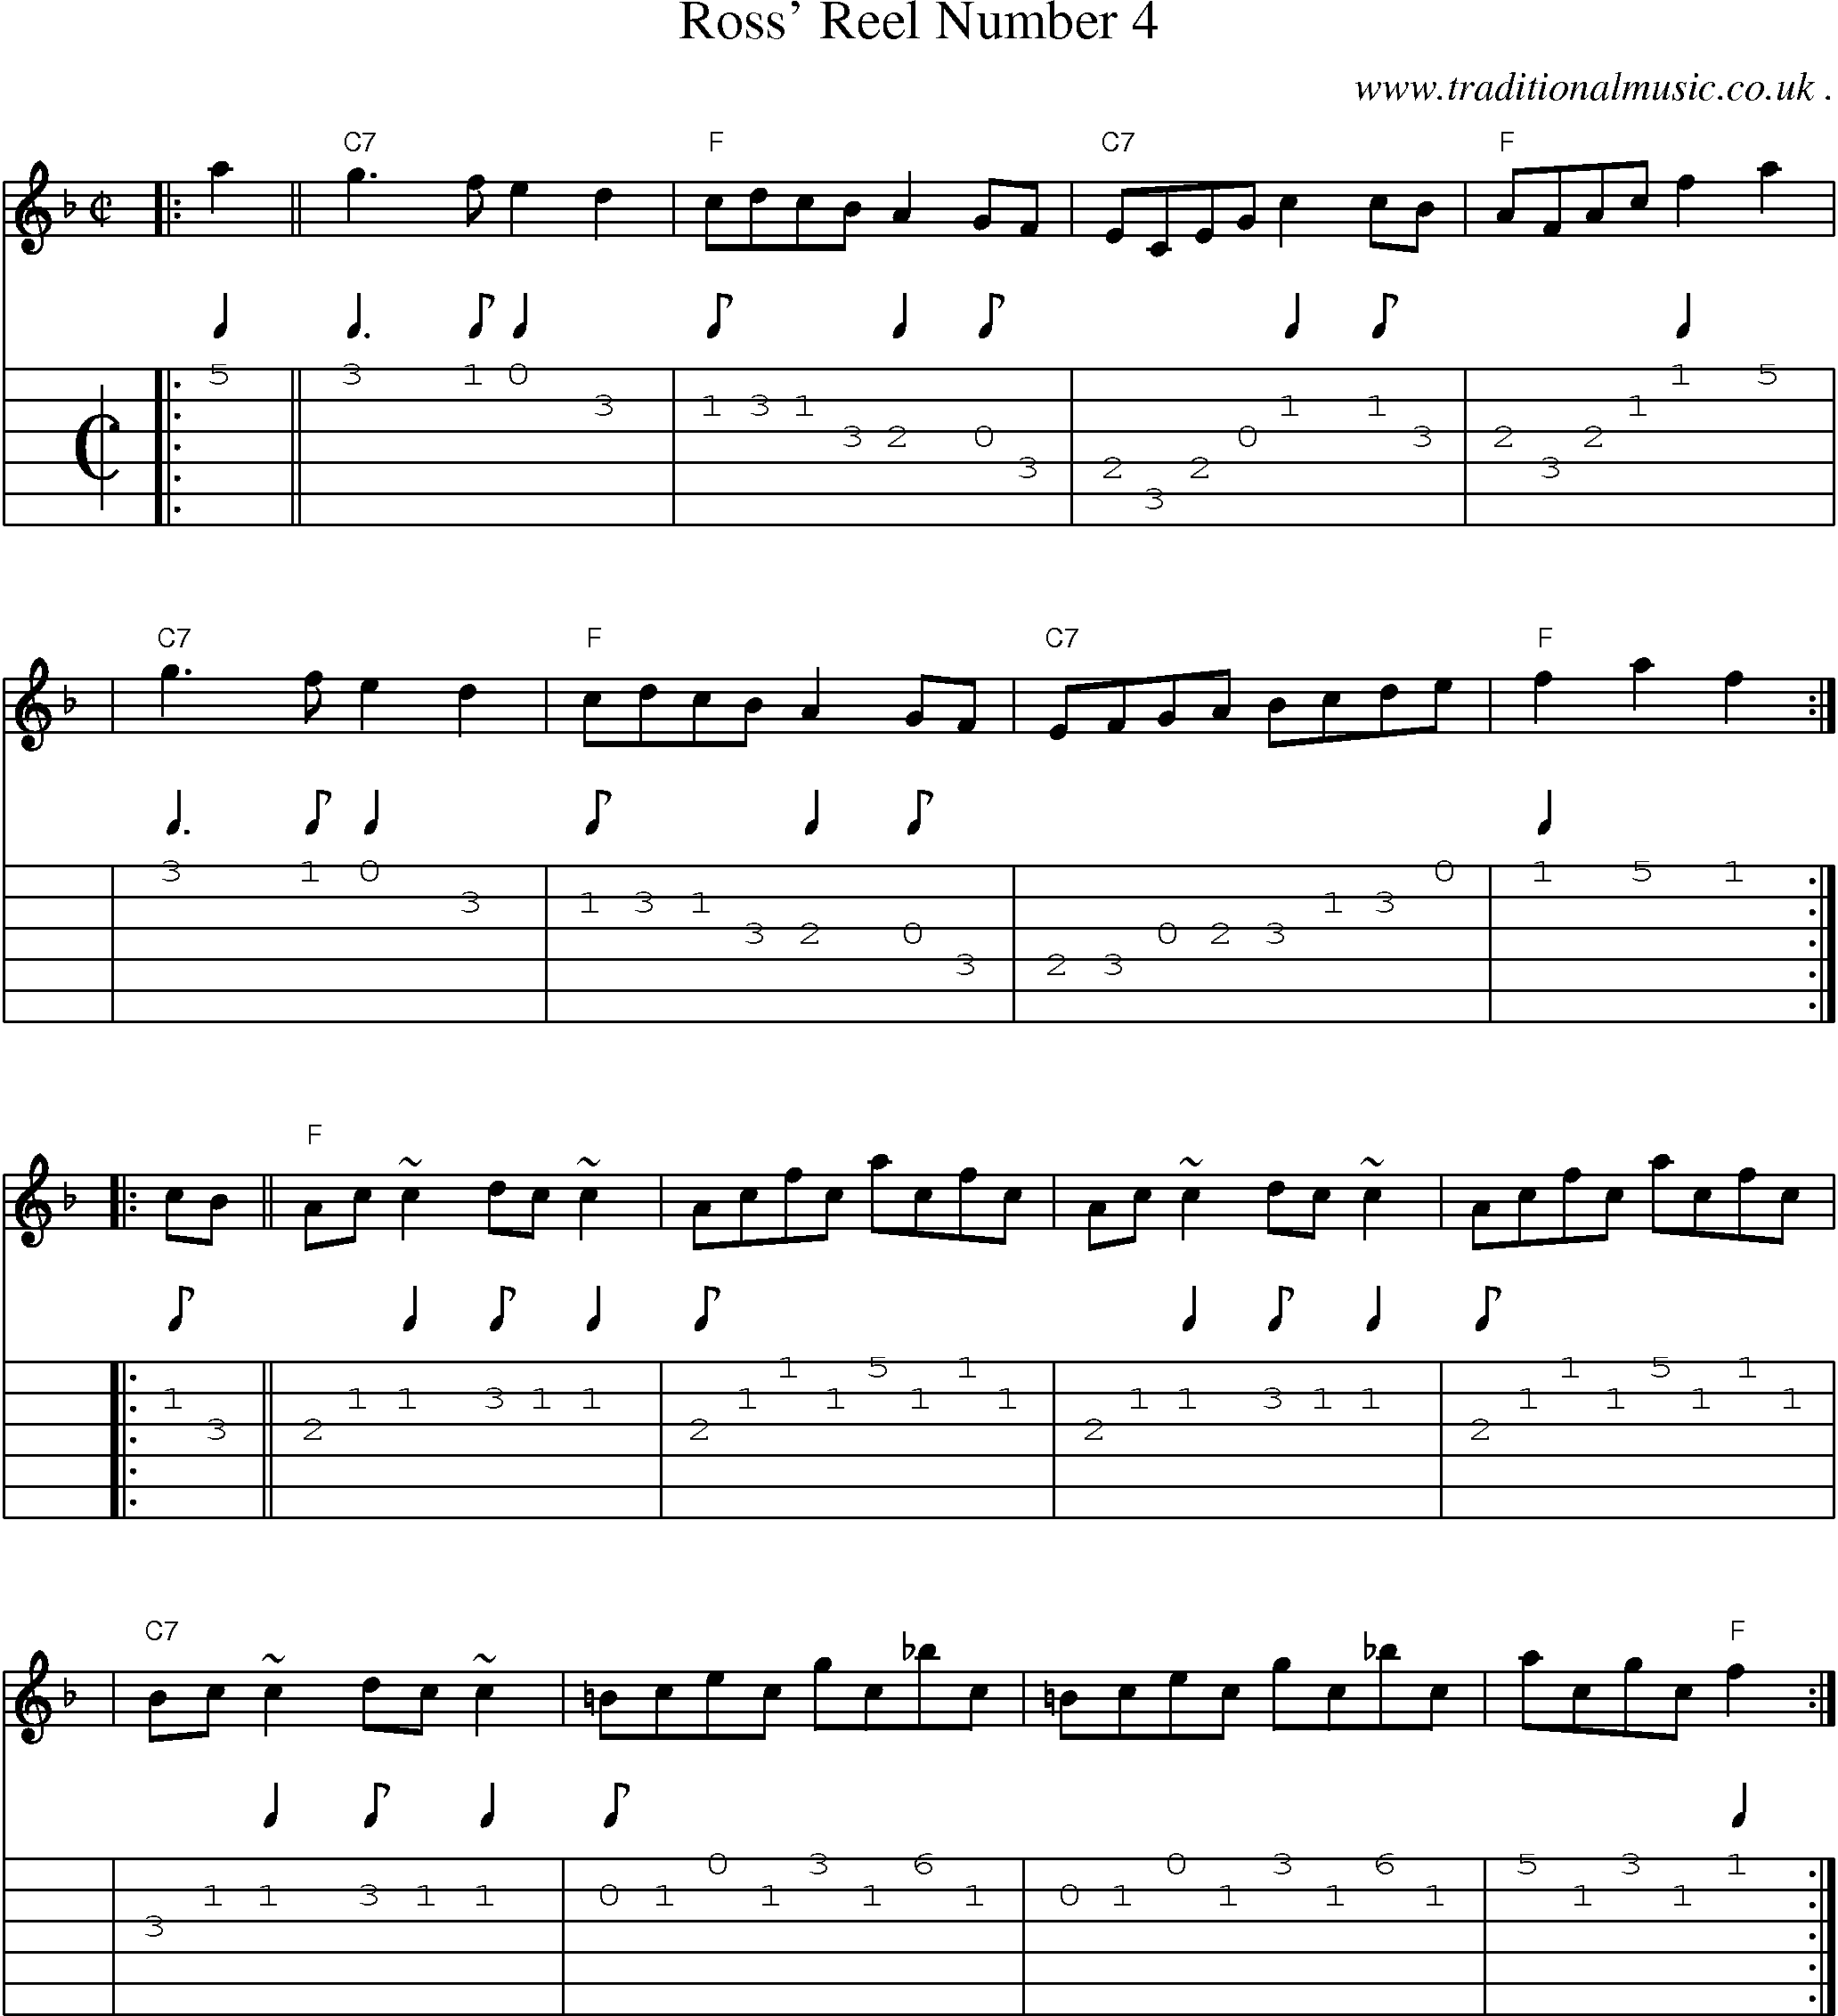 Scottish Tune, Sheetmusic, Midi, Mp3, Guitar chords u0026 tabs: Ross Reel Number 4